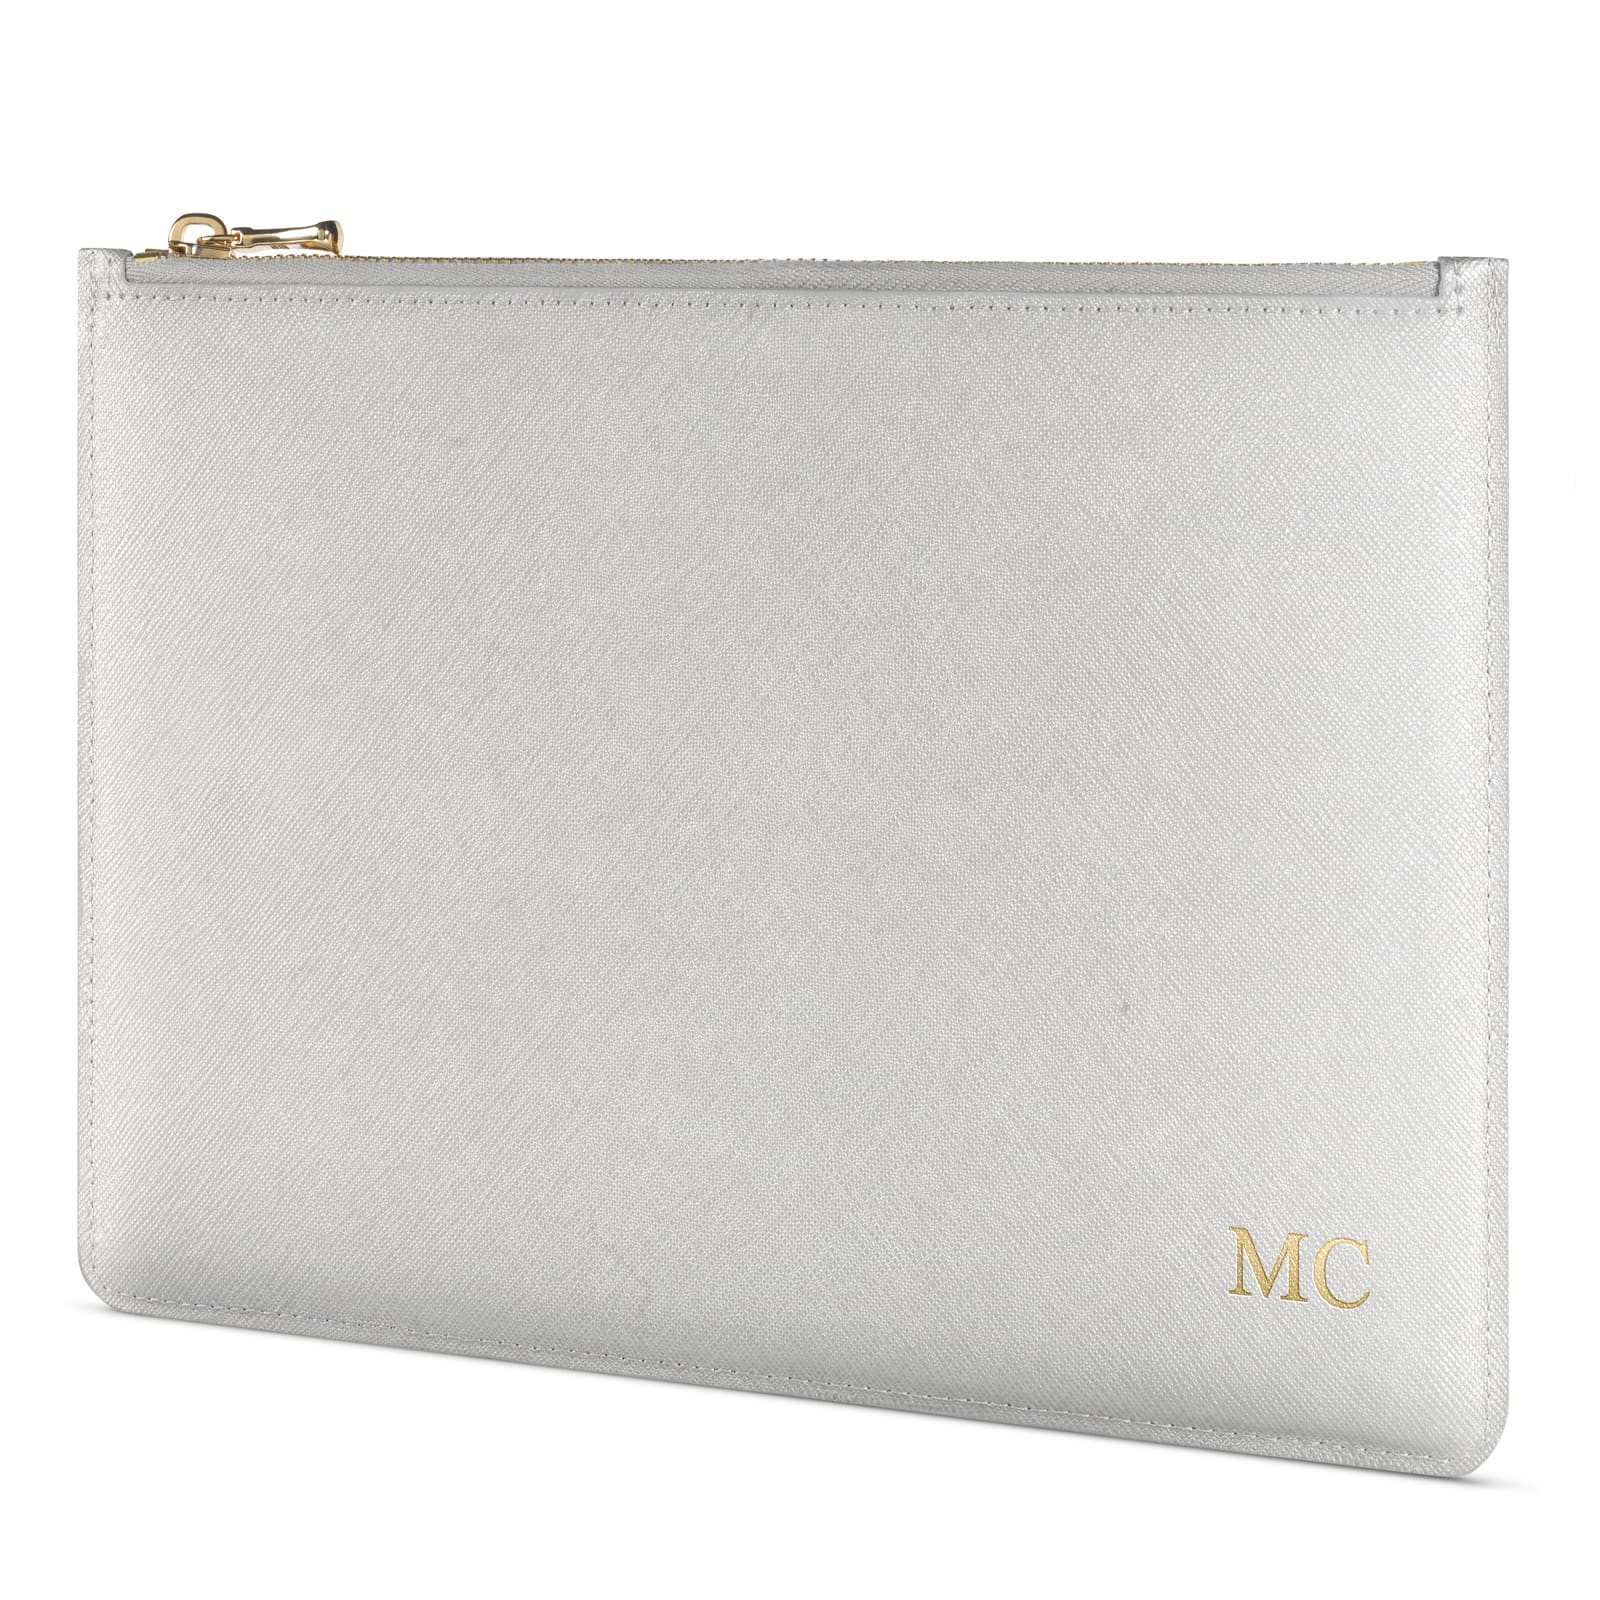 Personalised Silver Saffiano Leather Pouch